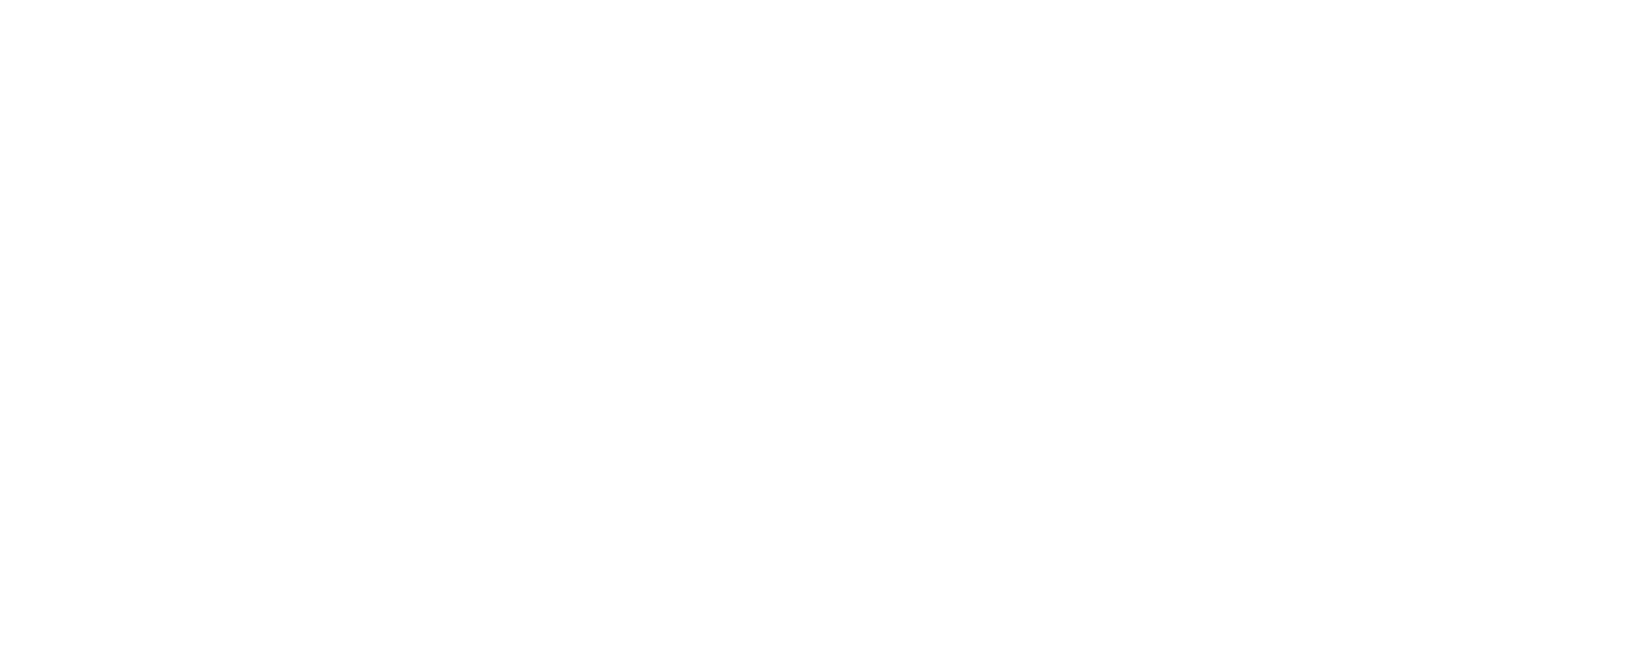 Flint and Genesee Chamber of Commerce logo